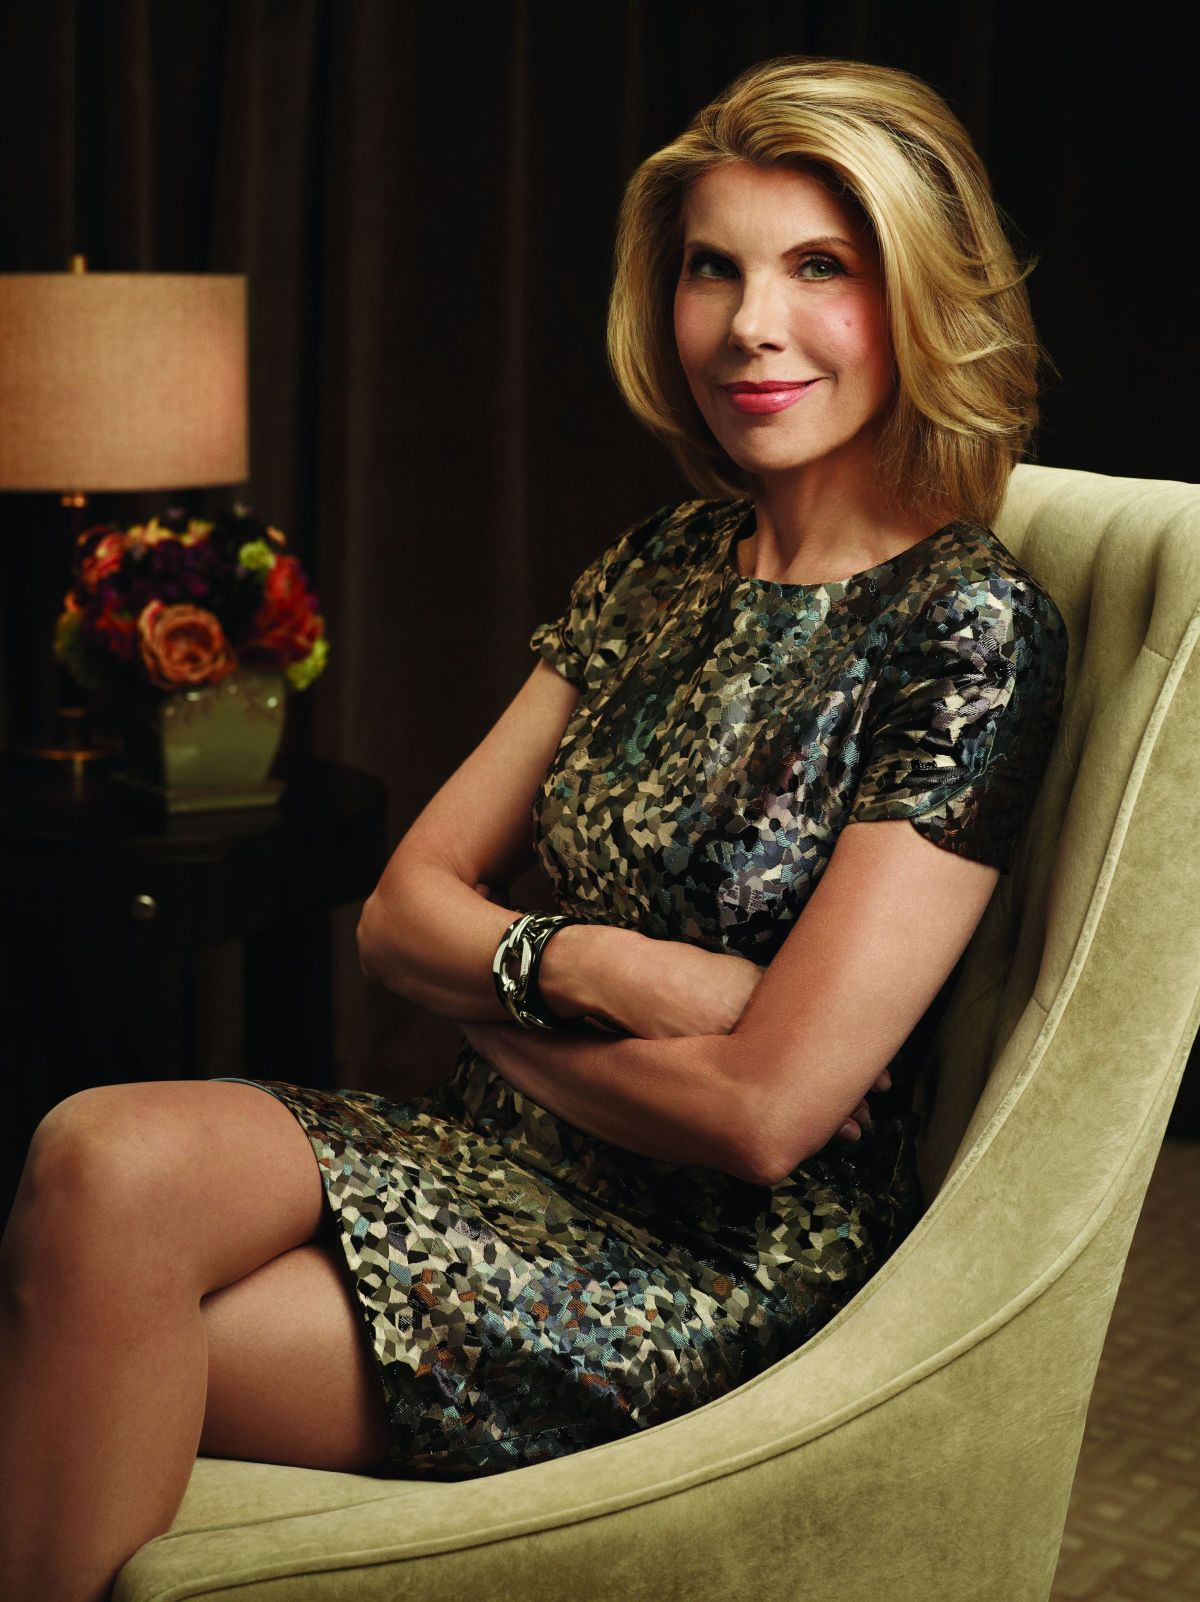 Christine Baranski as Diane Lockhart  on the CBS drama THE GOOD WIFE  on the CBS Television Network. Photo: Justin Stephens/CBS ¨© 2011 CBS Broadcasting Inc, All Rights Reserved.